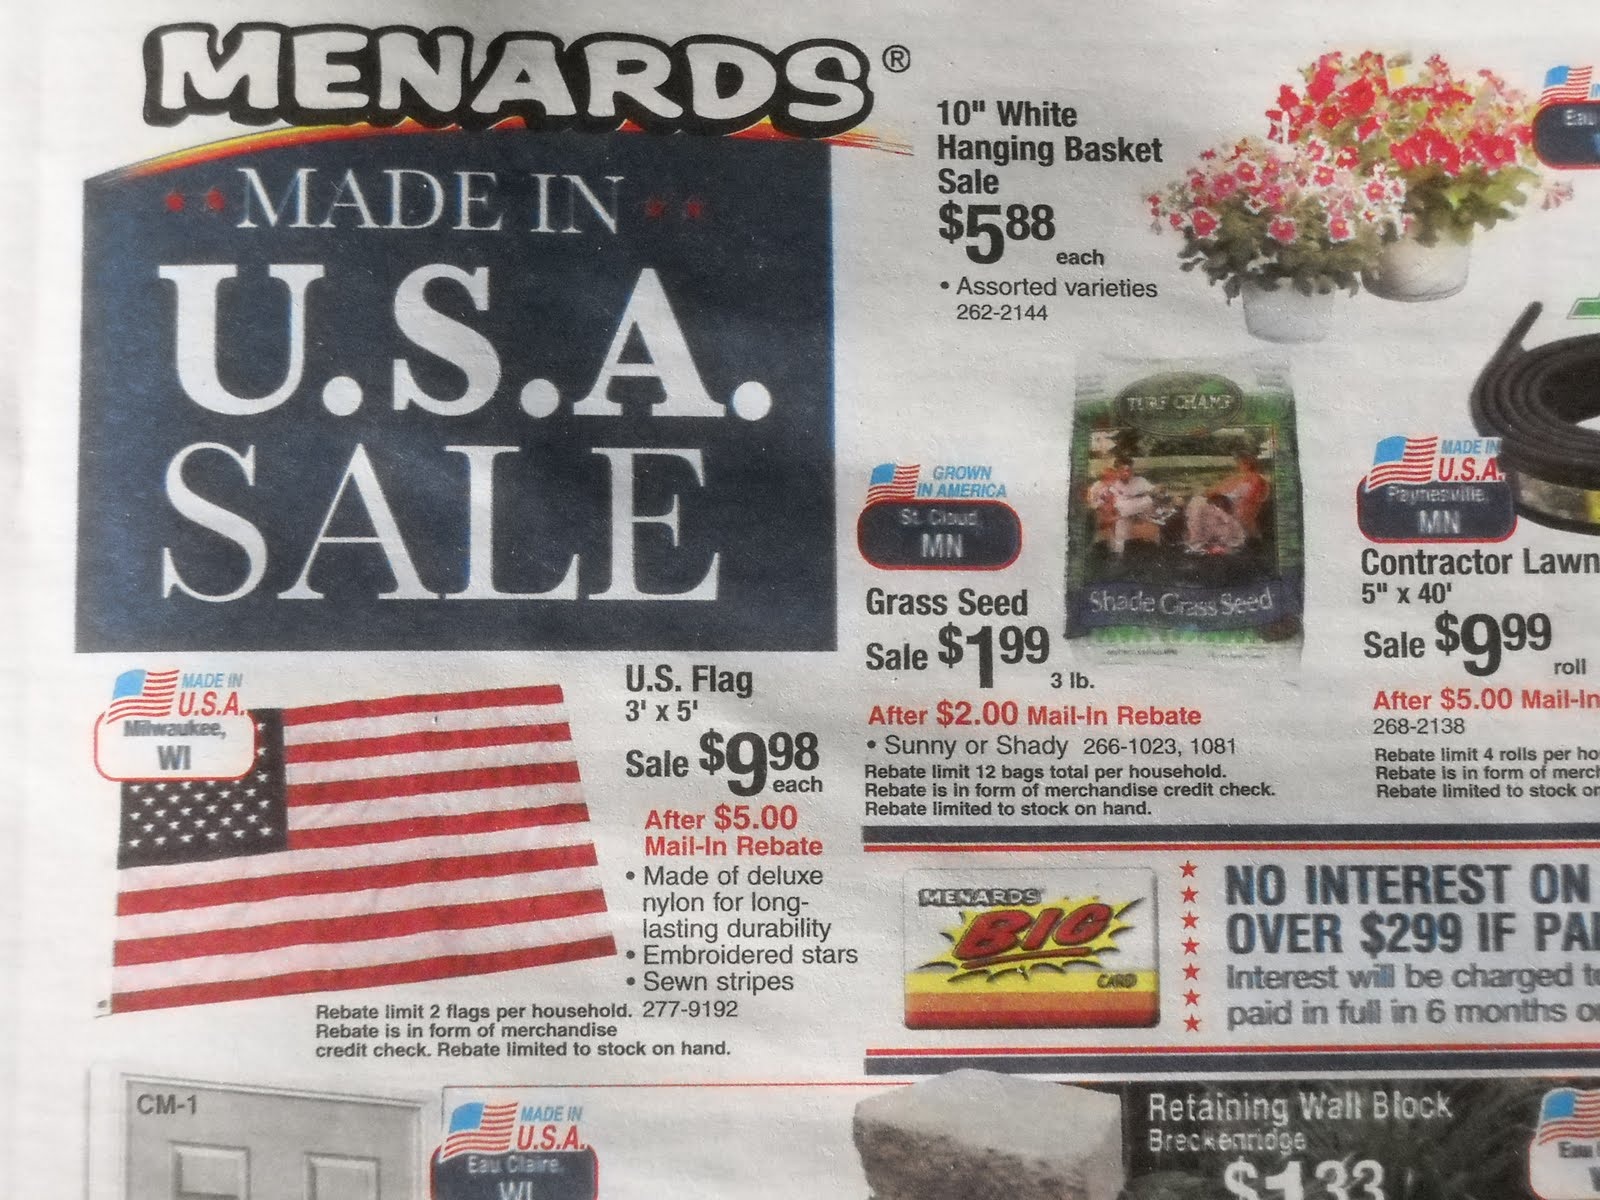 I have a big project closing soon that I need to buy materials for but would like to take advantage of the 11% rebate promotions it seems like Menard'I have a big project closing soon that I need to buy materials for but would like to take advantage of the 11% rebate promotions it seems like Menard'.